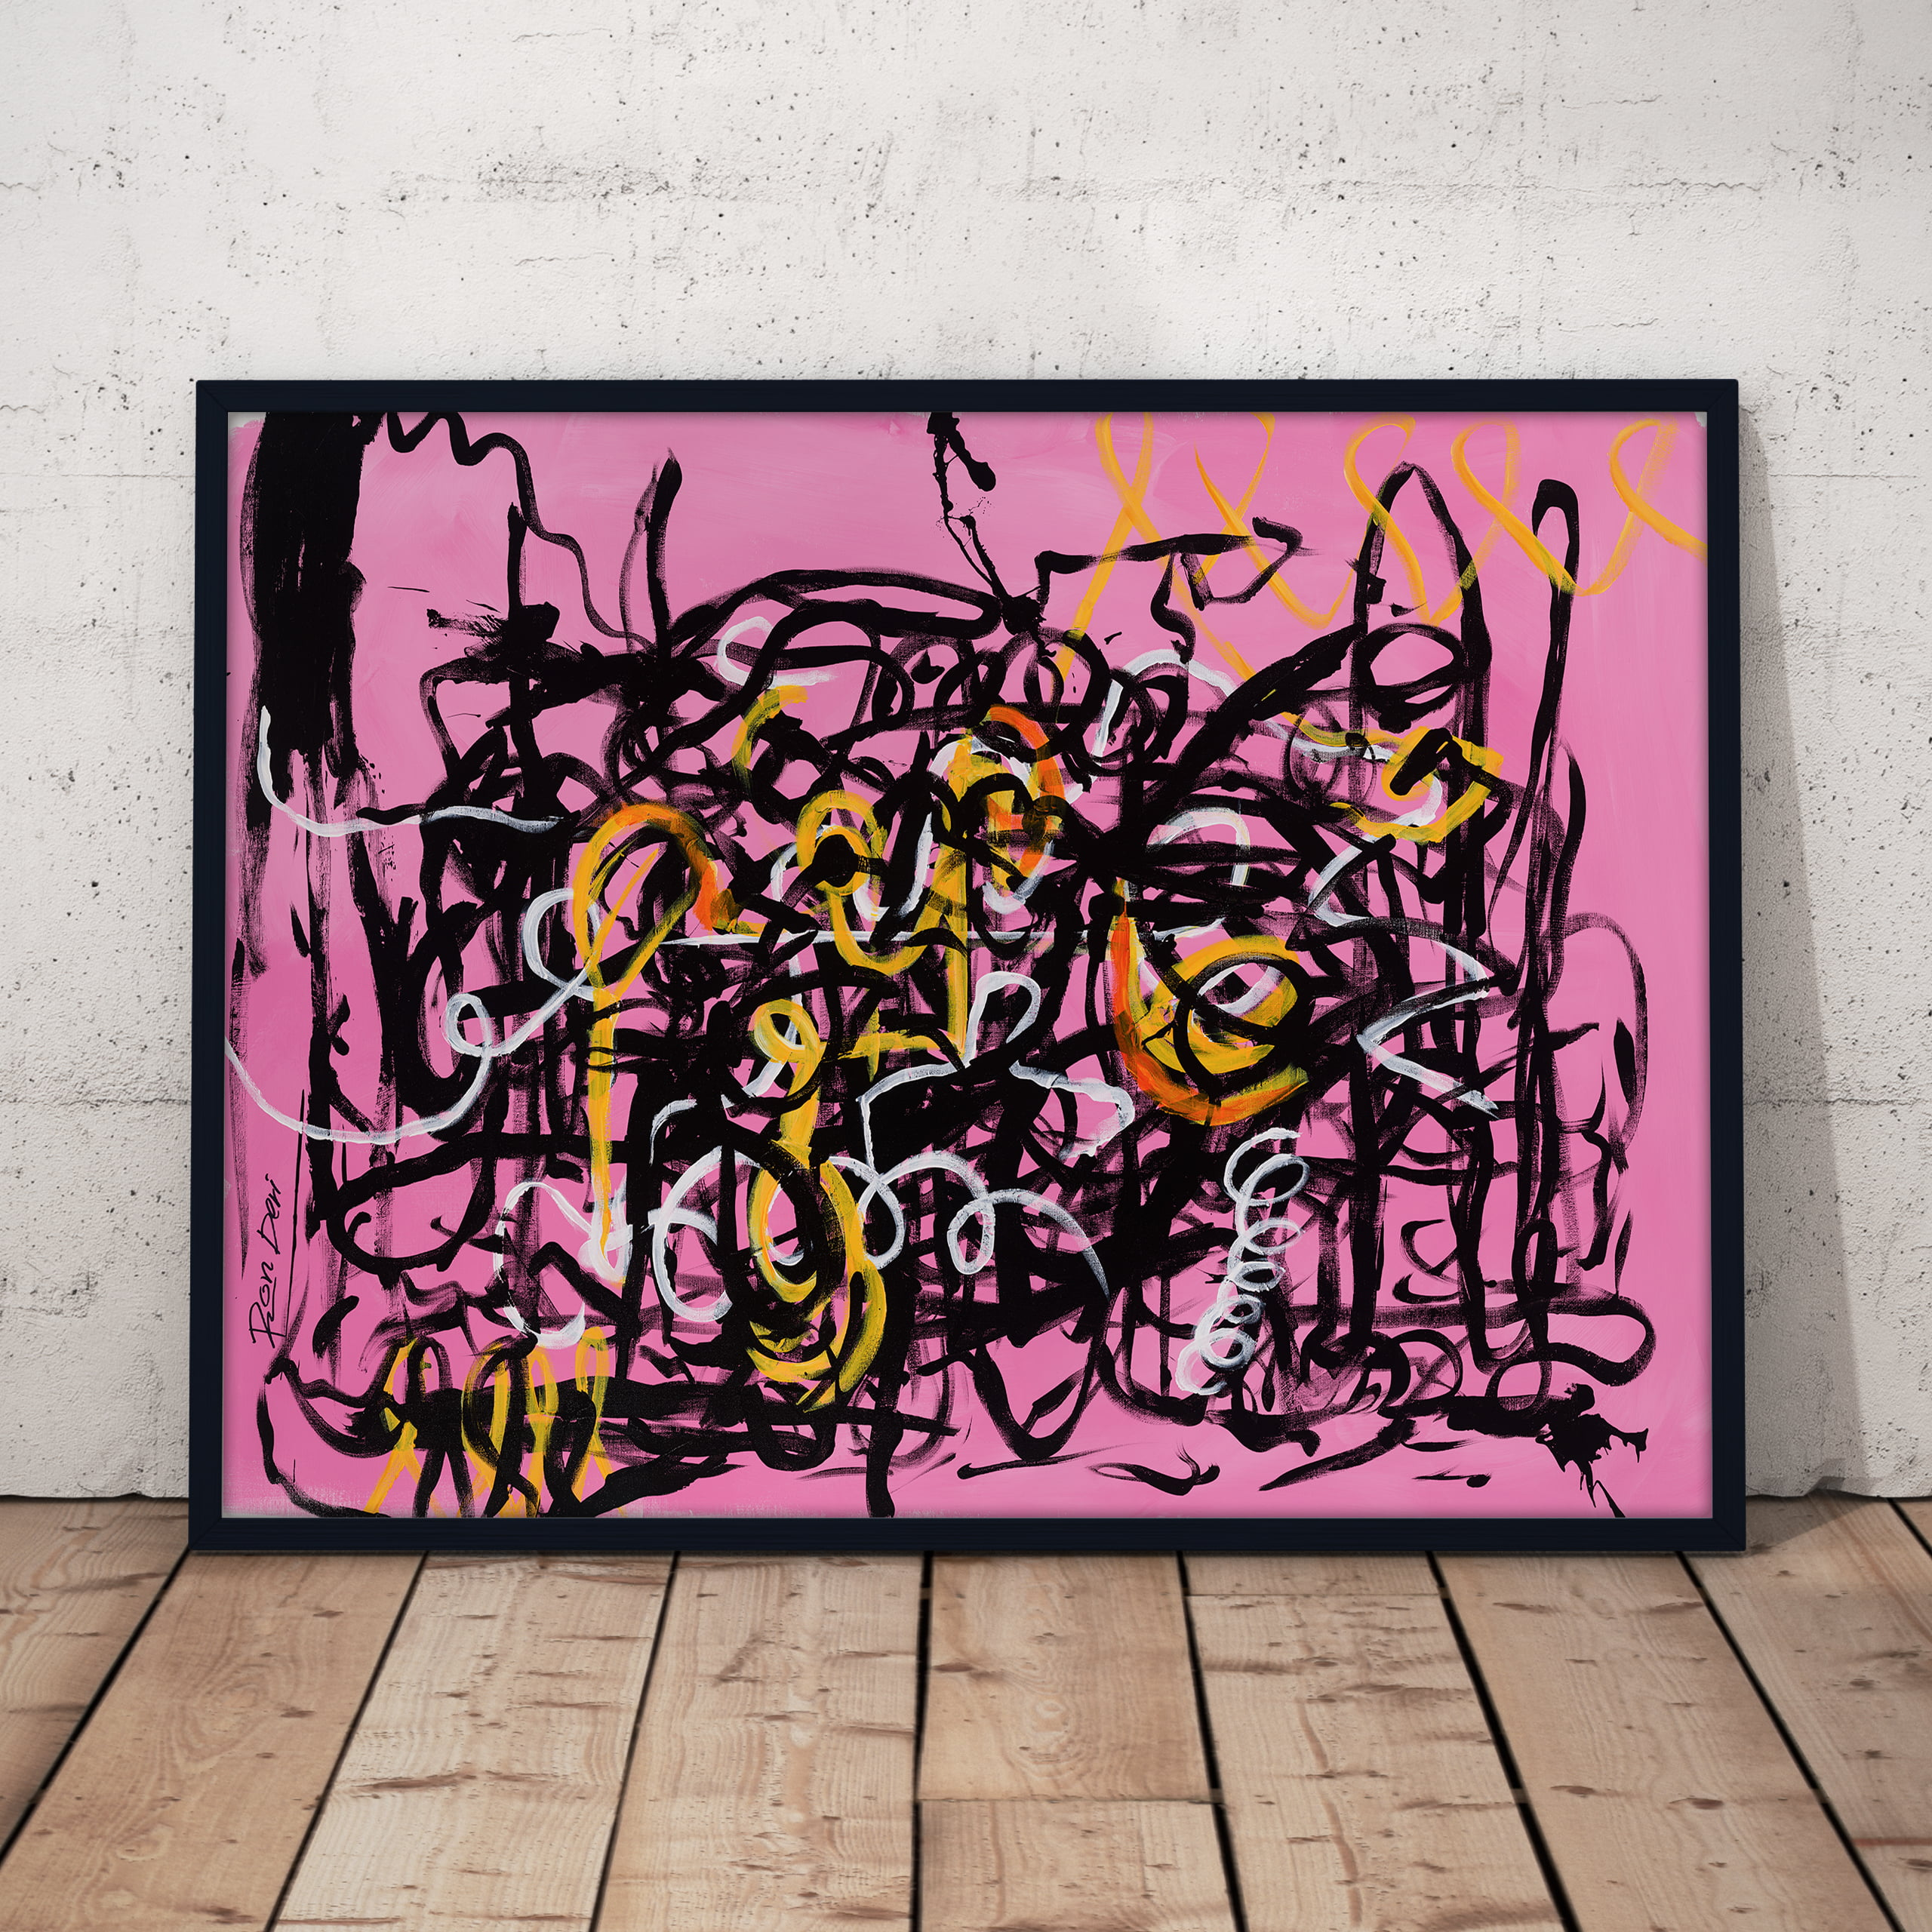 chaos 2 ii - pink and black abstract art print by ron deri